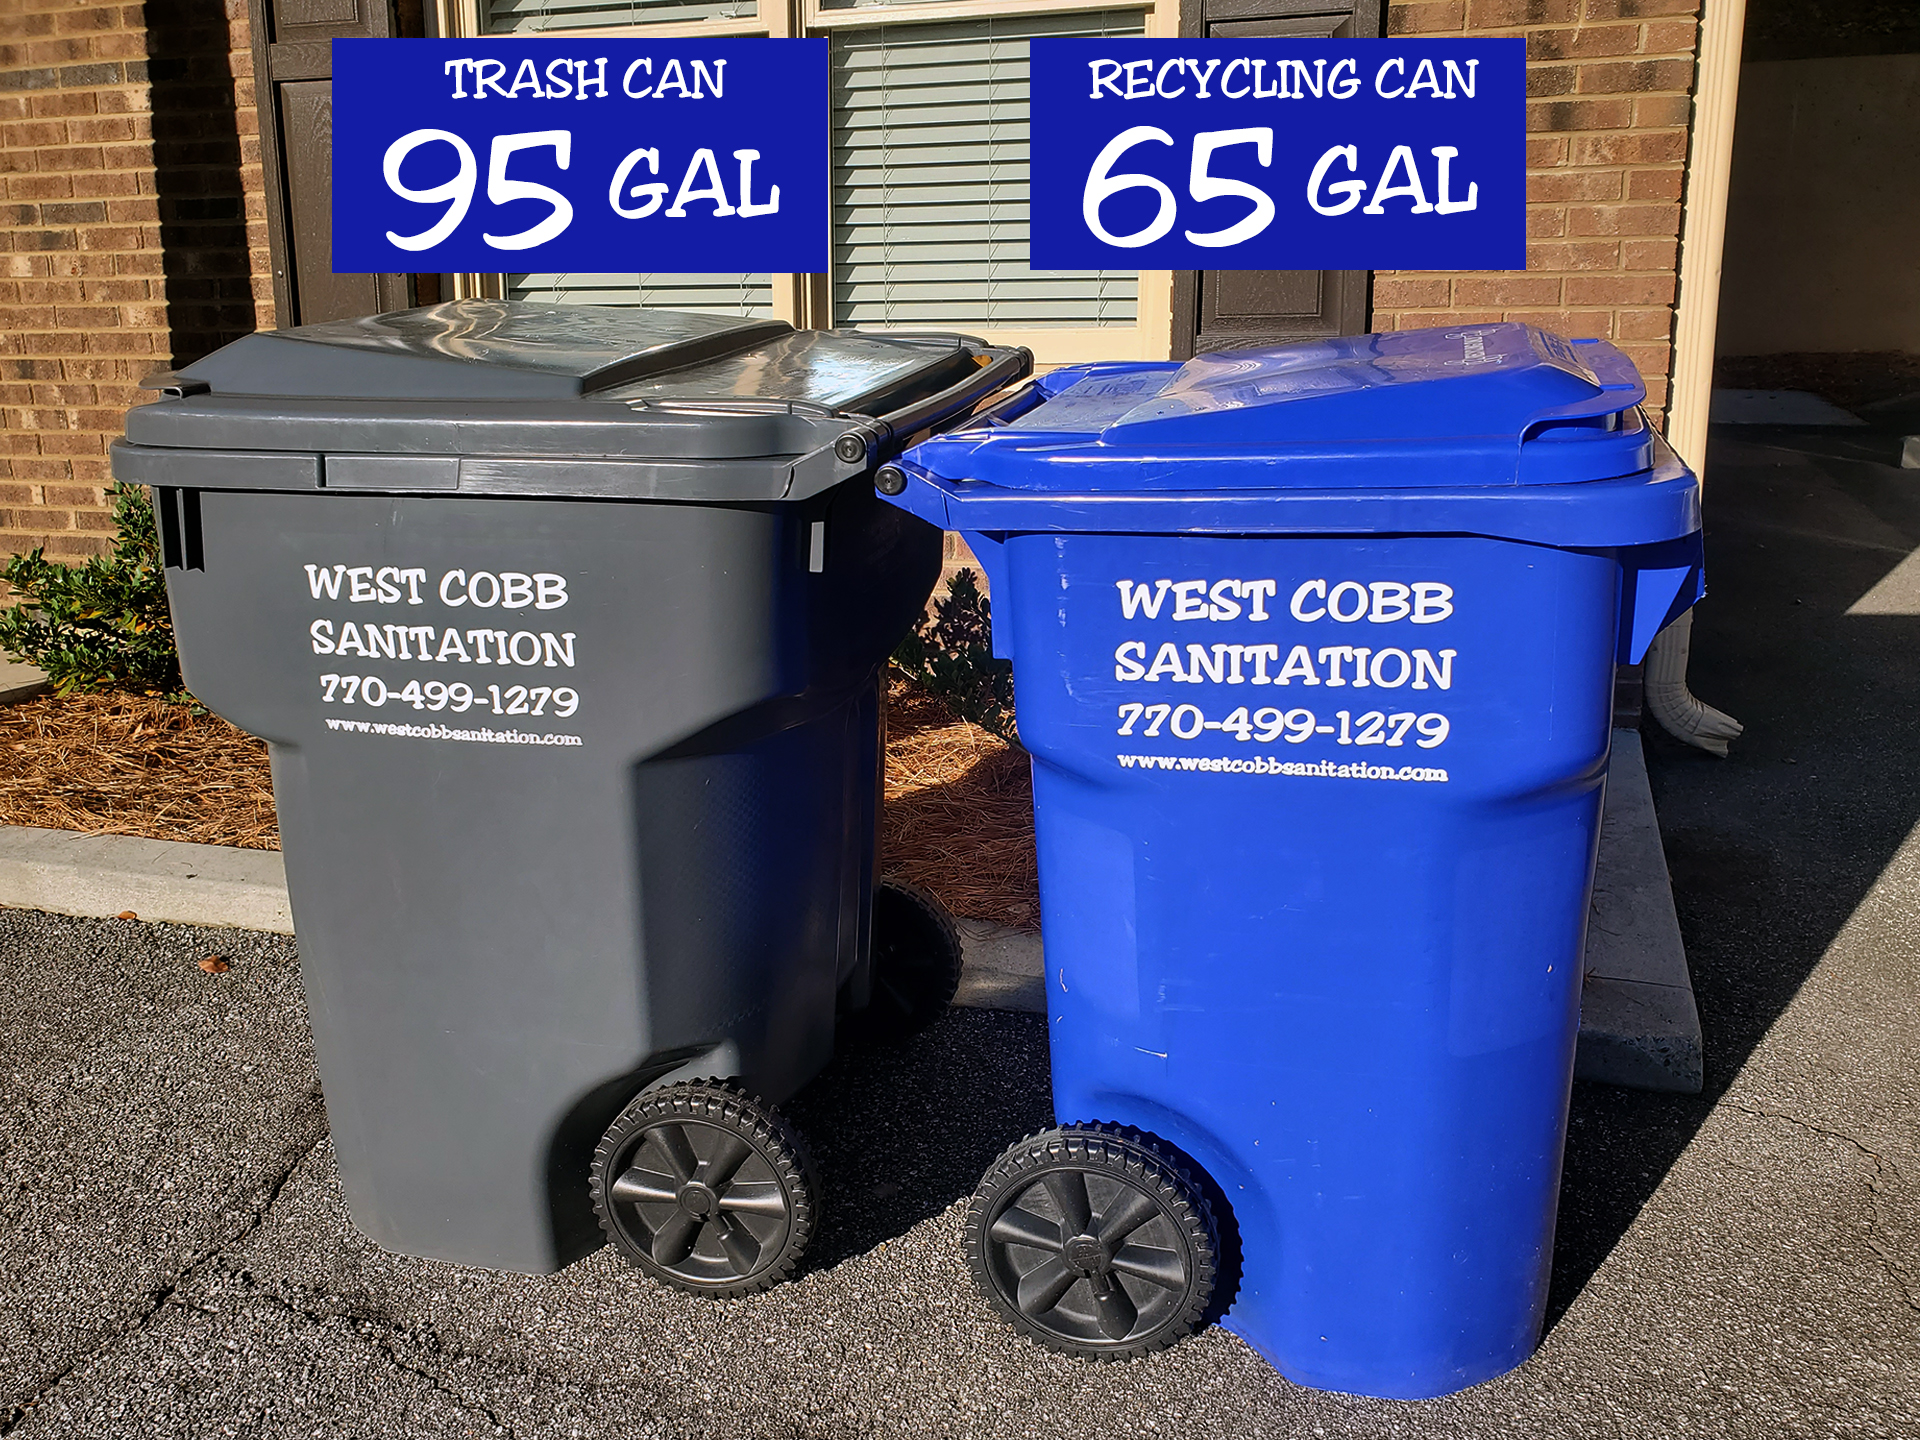 West Cobb Sanitation Trash & Recycle Bin Size photo